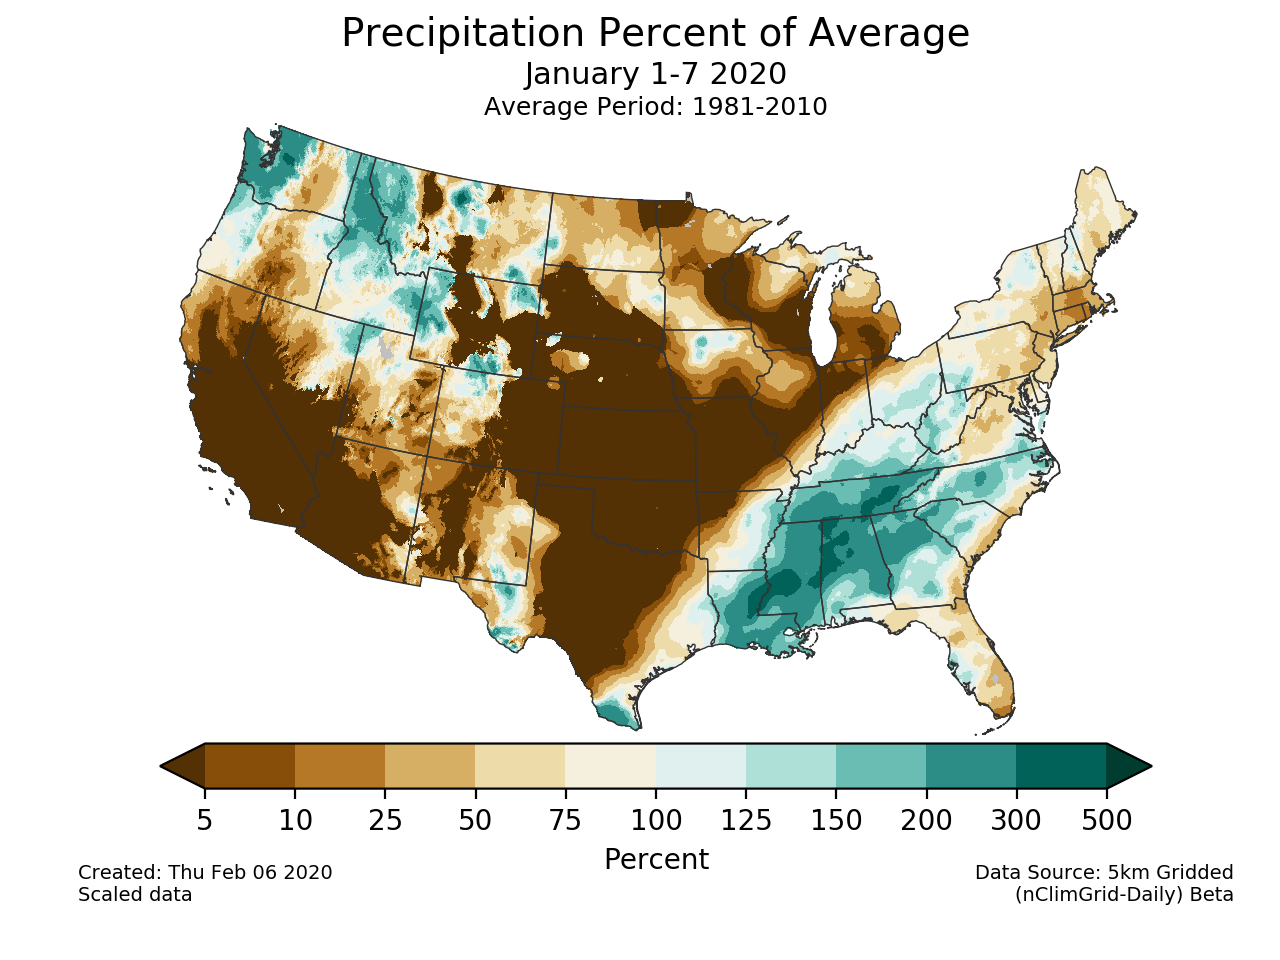 Precipitation anomalies (percent of normal) for the CONUS for January 1-7 2020